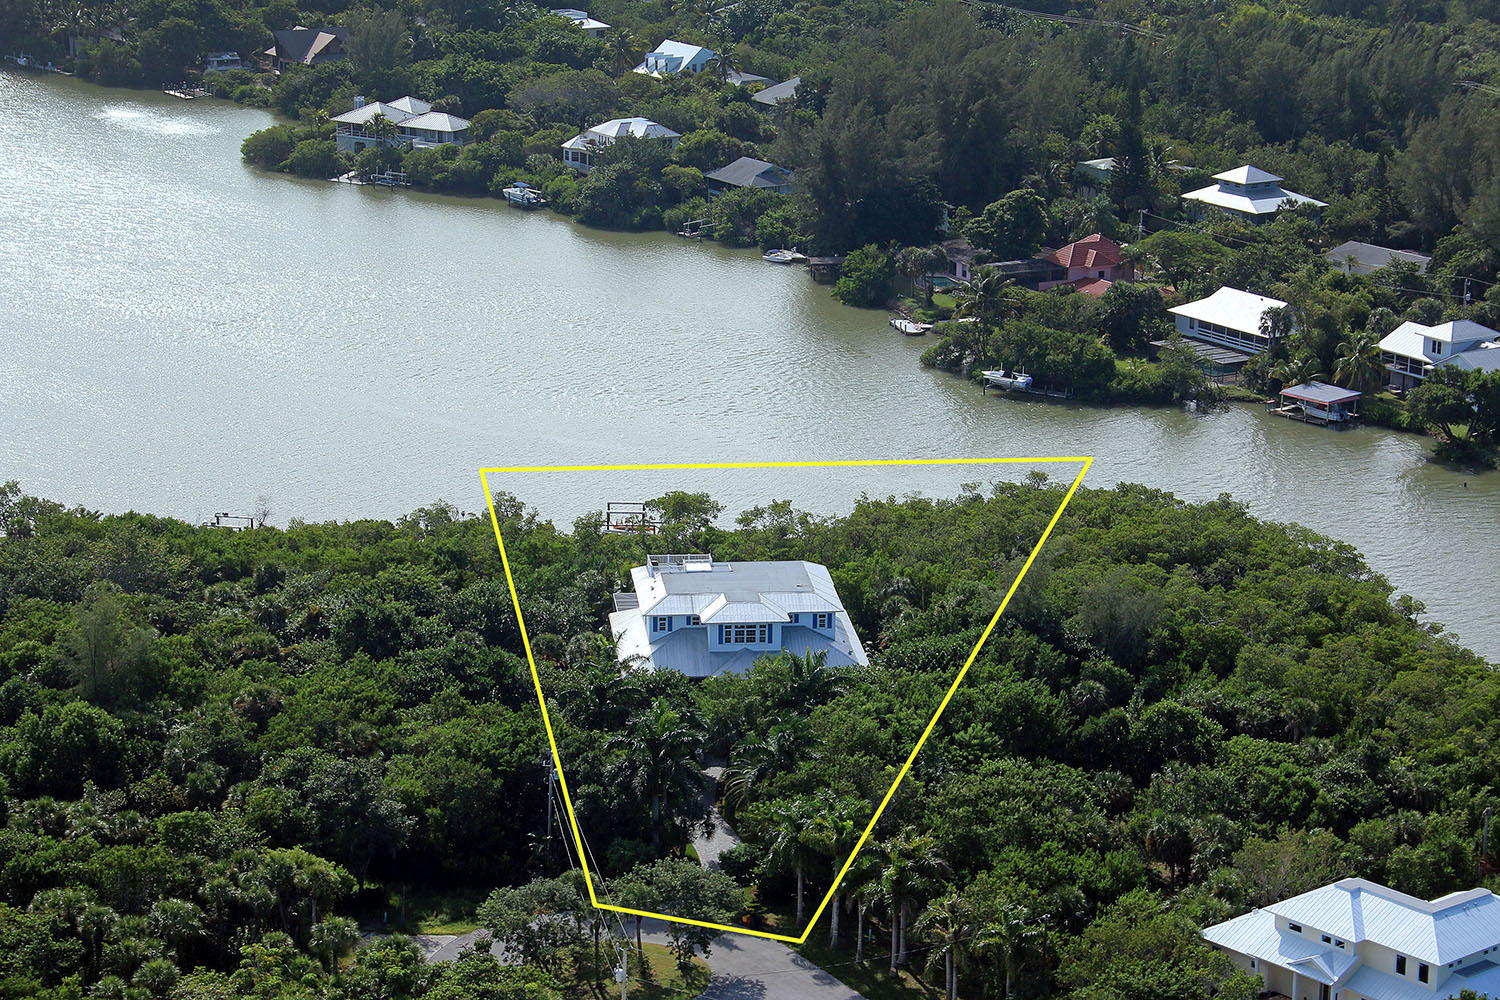 garske 2405 blue crab court aerial